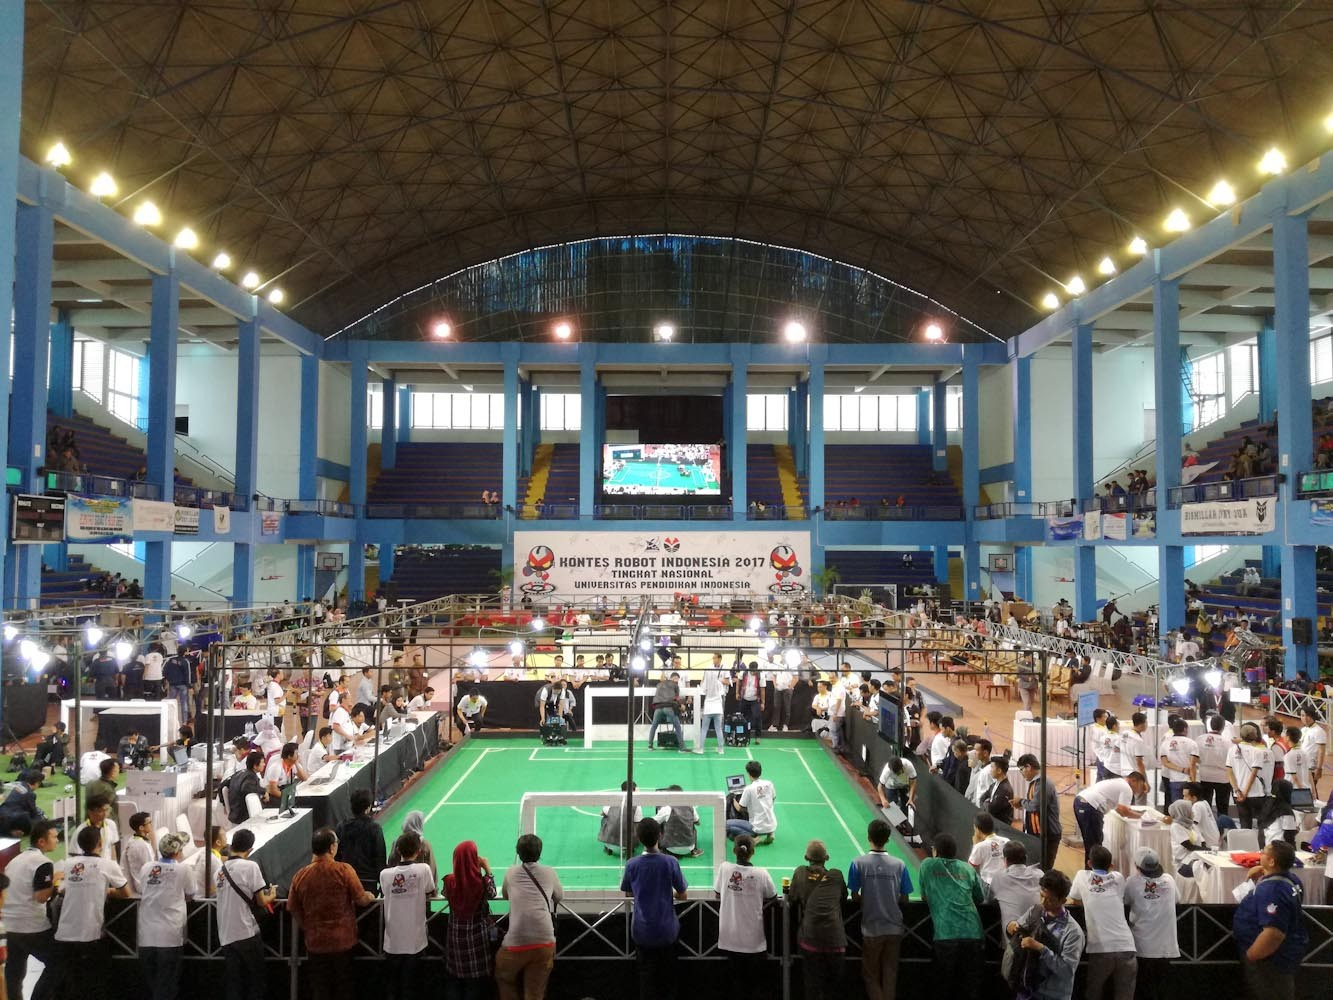 Teams compete at the 2017 National Robot Contest at the gymnasium of the Indonesia University of Education (UPI) in Bandung. Ninety-three teams from 48 universities competed. JP/Arya Dipa